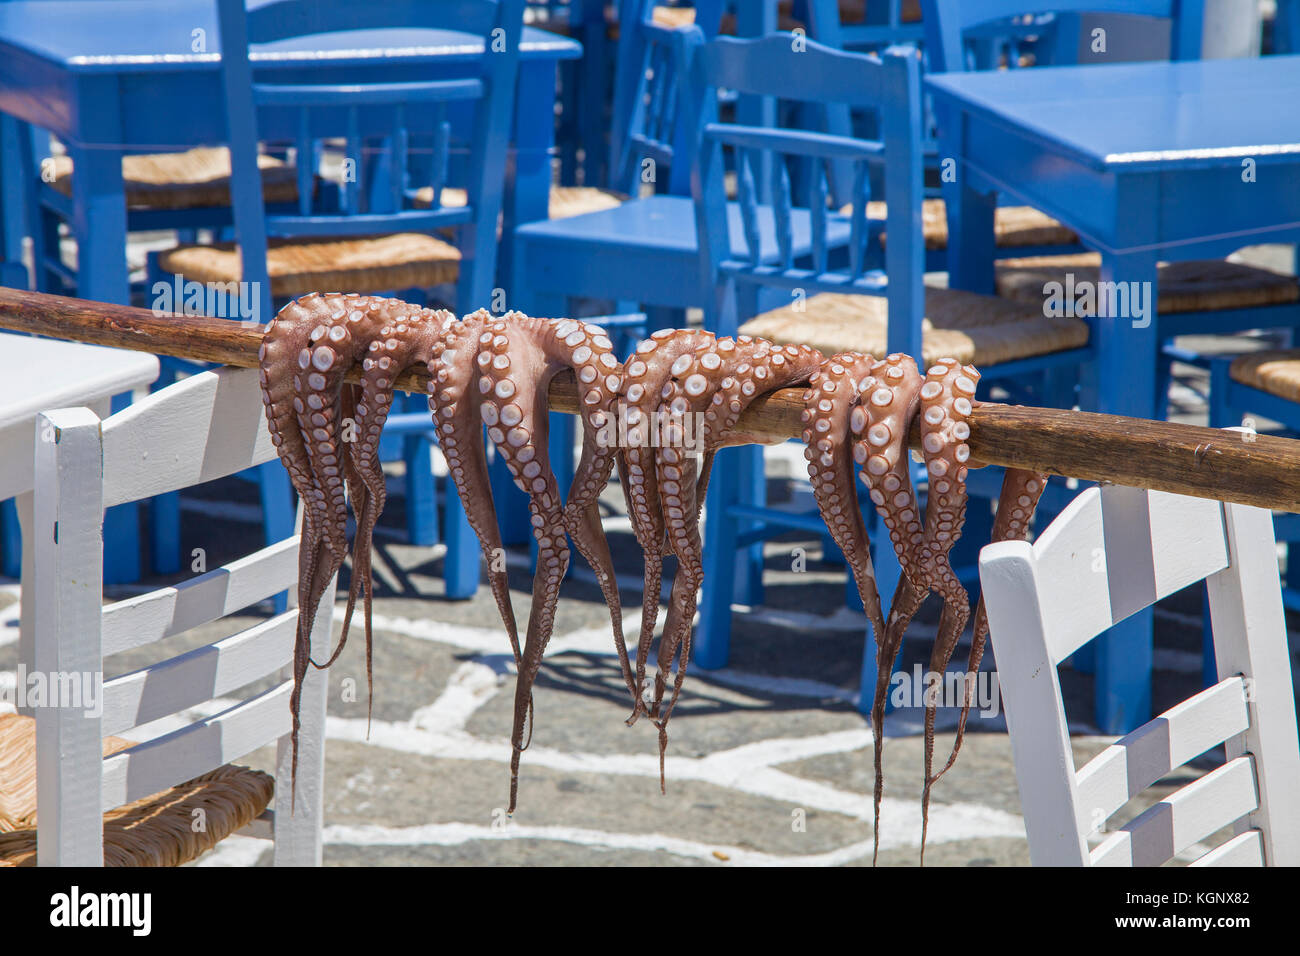 Octopus hanging for drying at the harbor of Naoussa, Paros, Cyclades, Greece, Mediterranean Sea, Europe - Stock Image